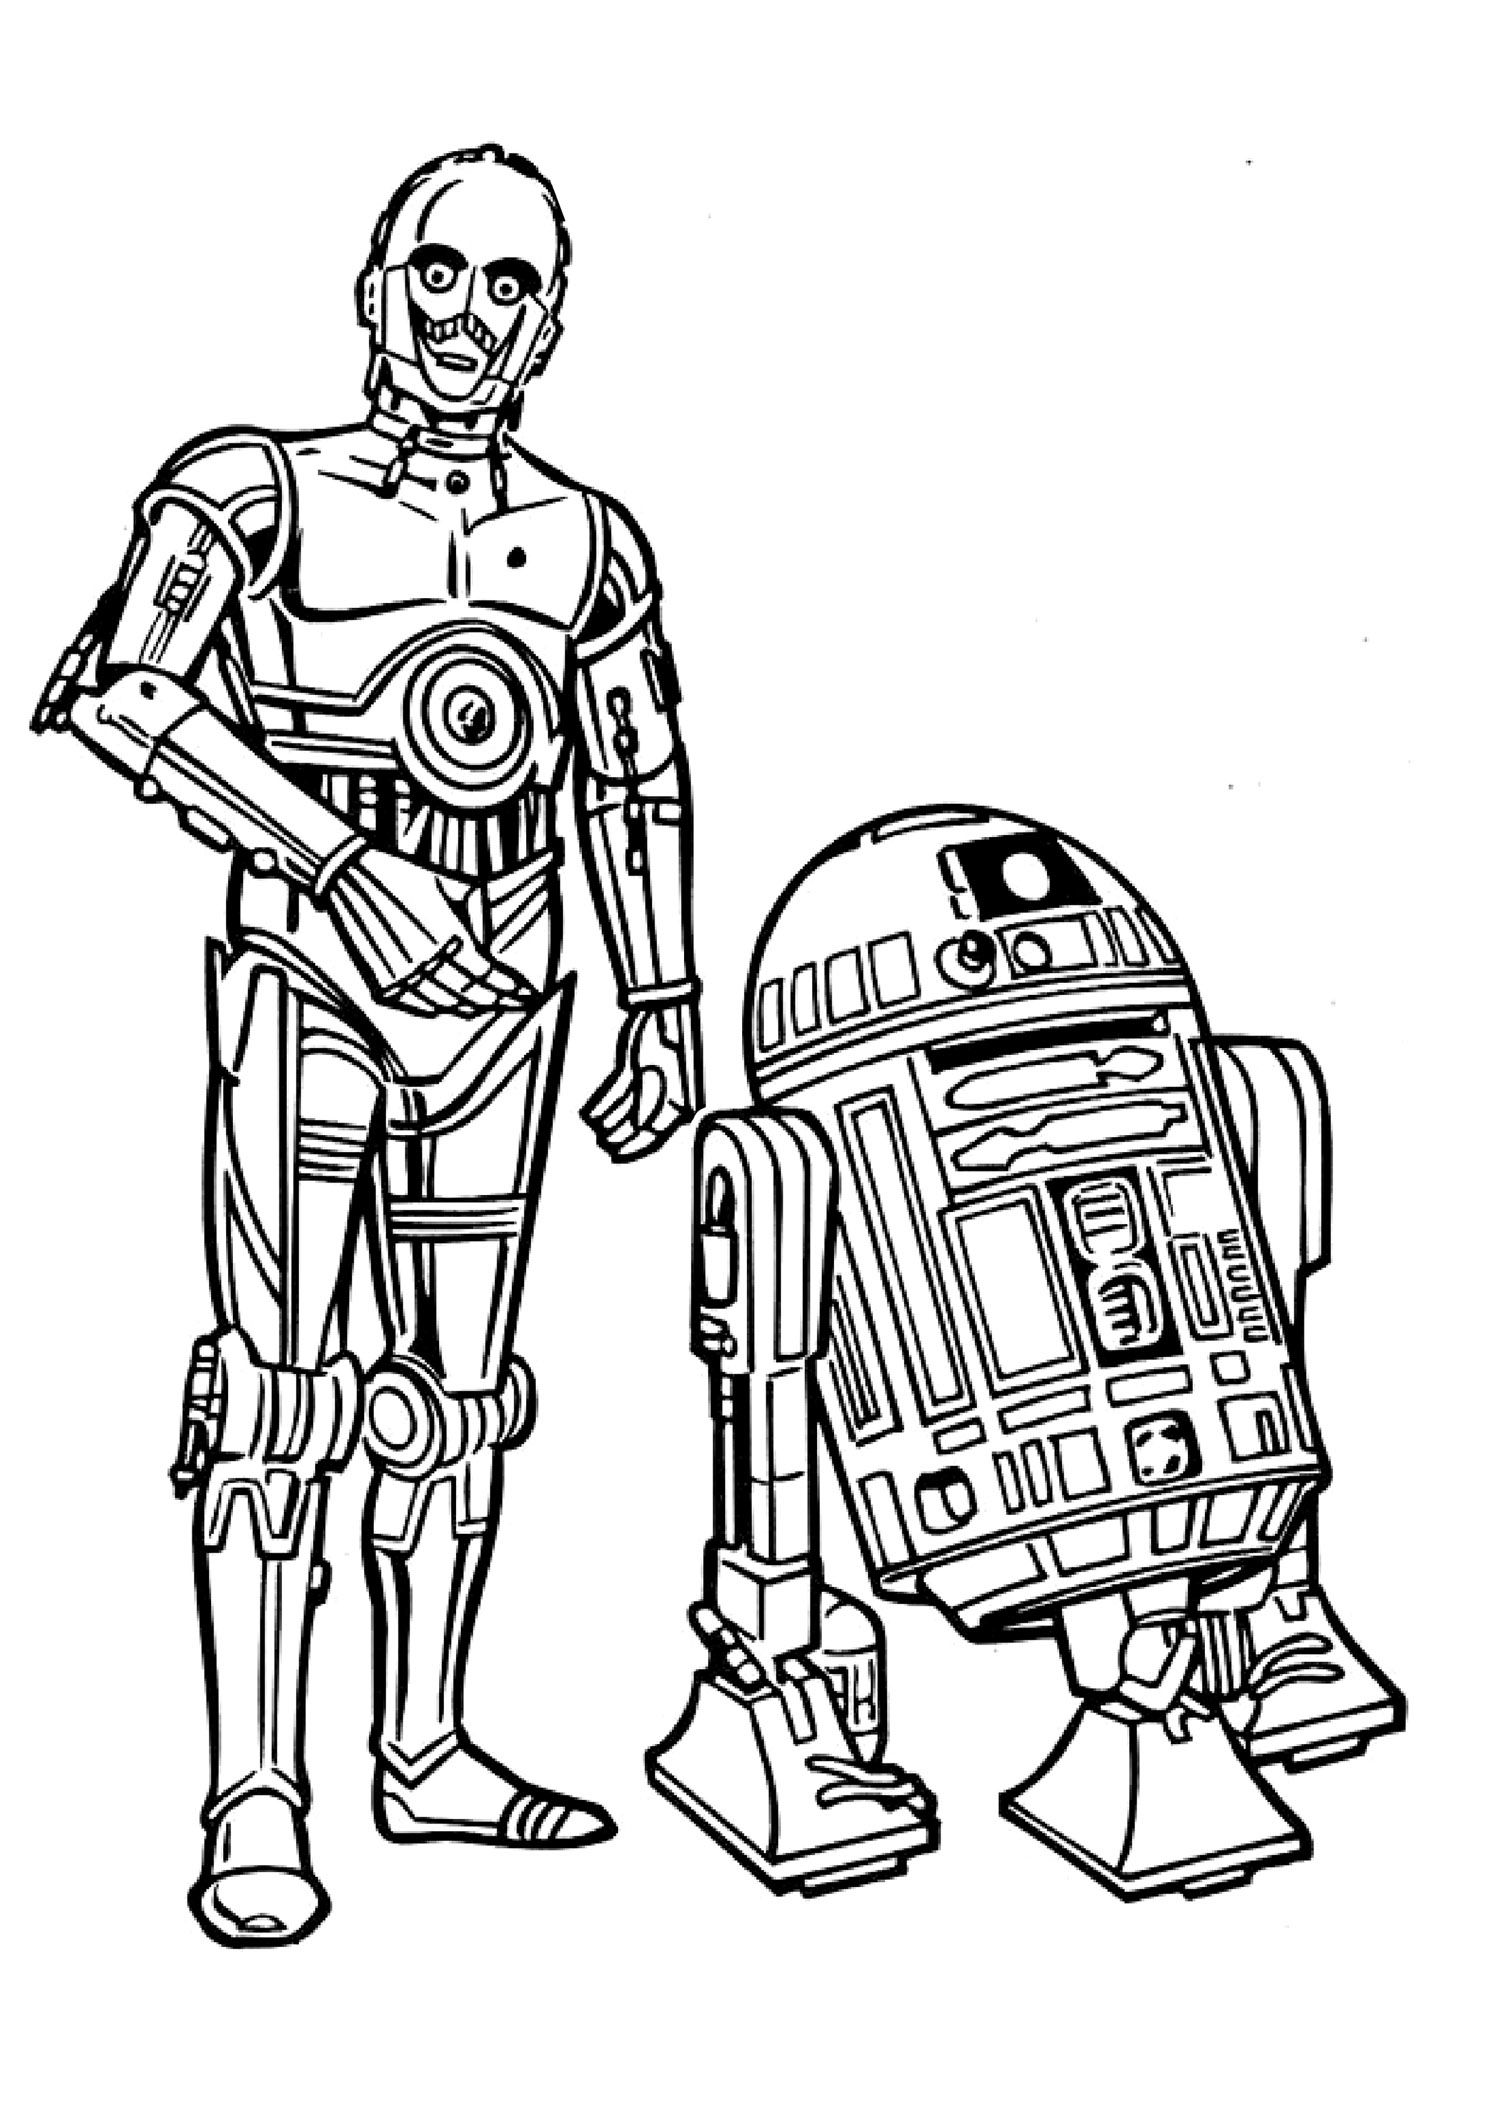 To Print Coloriage Star Wars C6po C3po 2 Click On The Printer